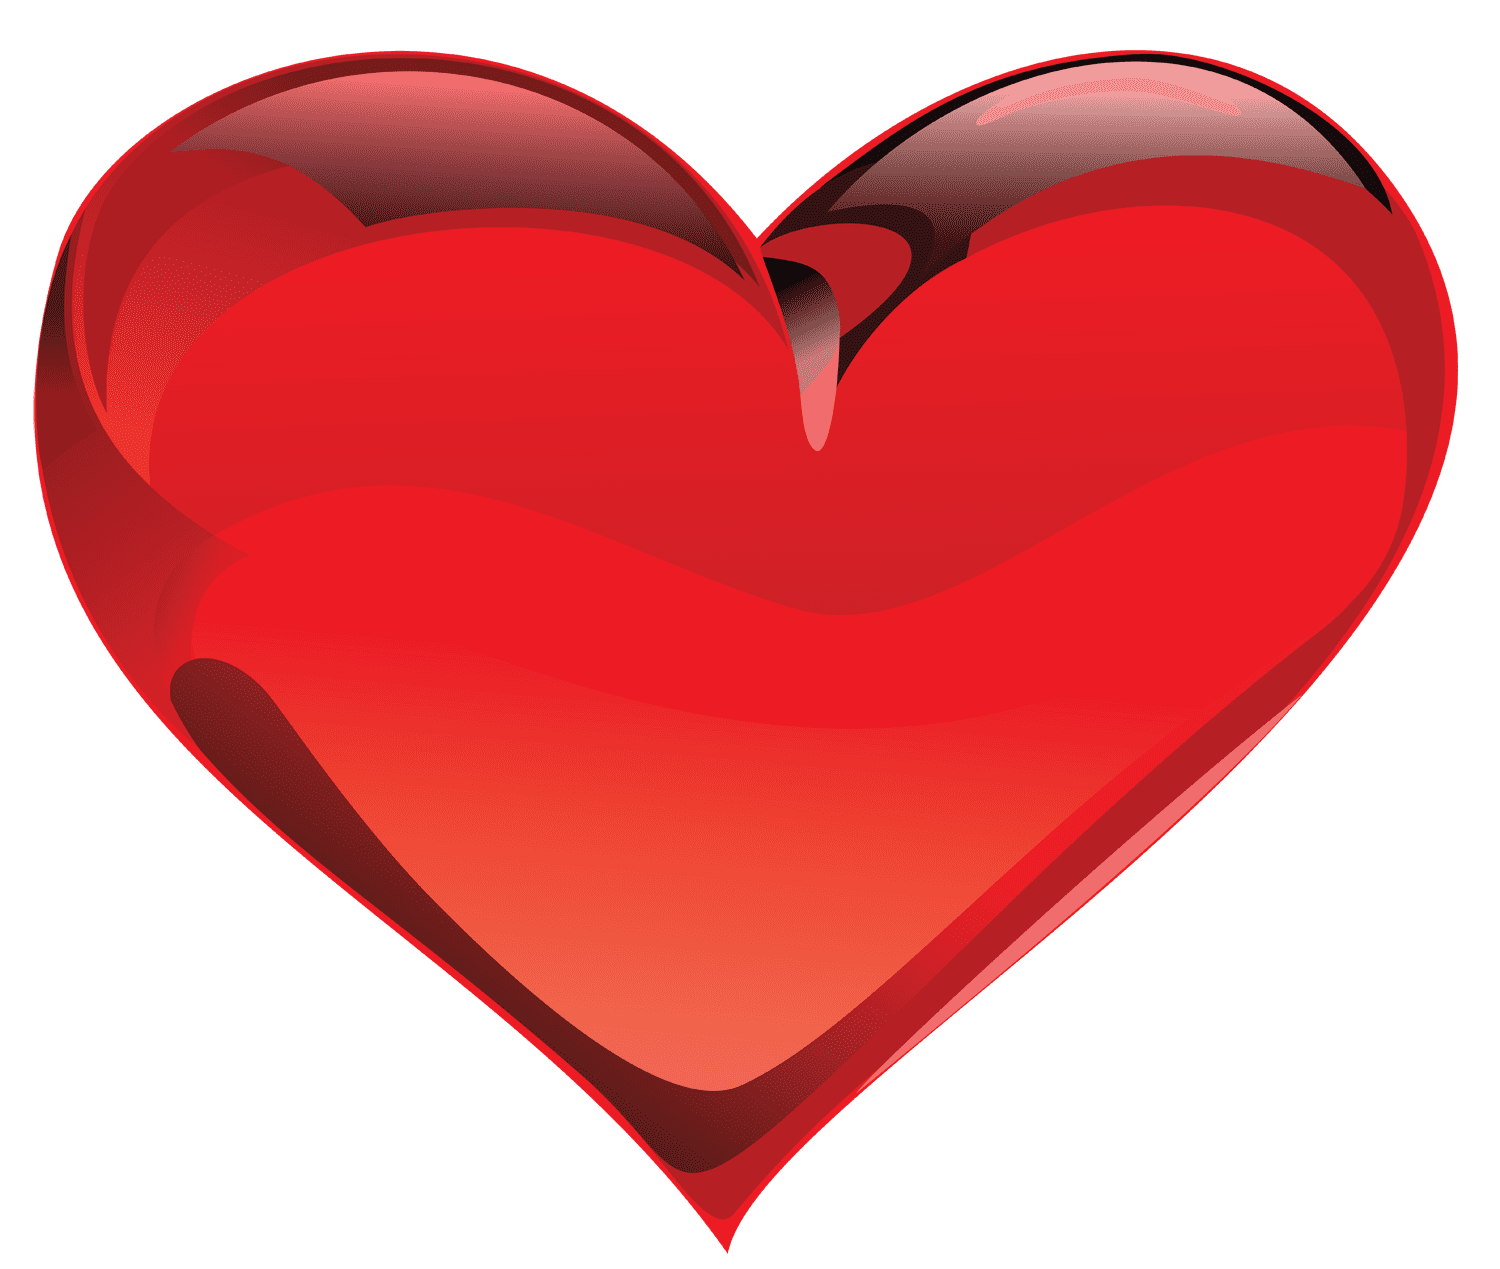 Large Red Heart Clipart 1138945212